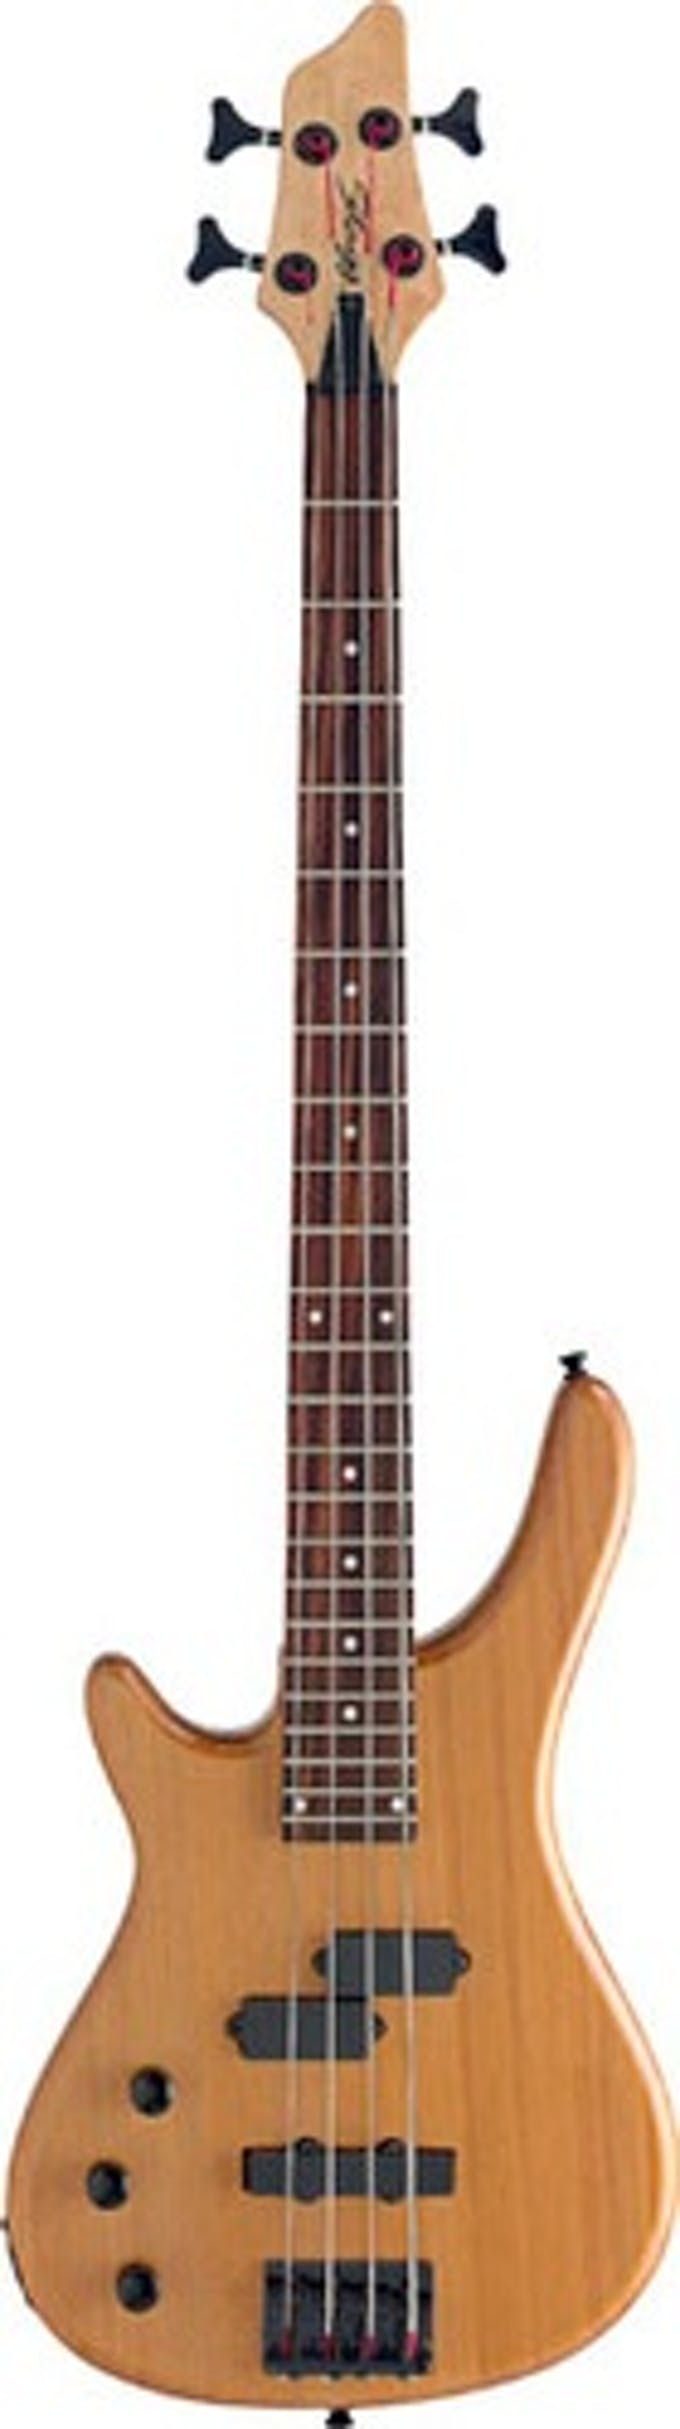 Stagg Bc300 Left Handed Fusion Bass Guitar In Natual Andertons